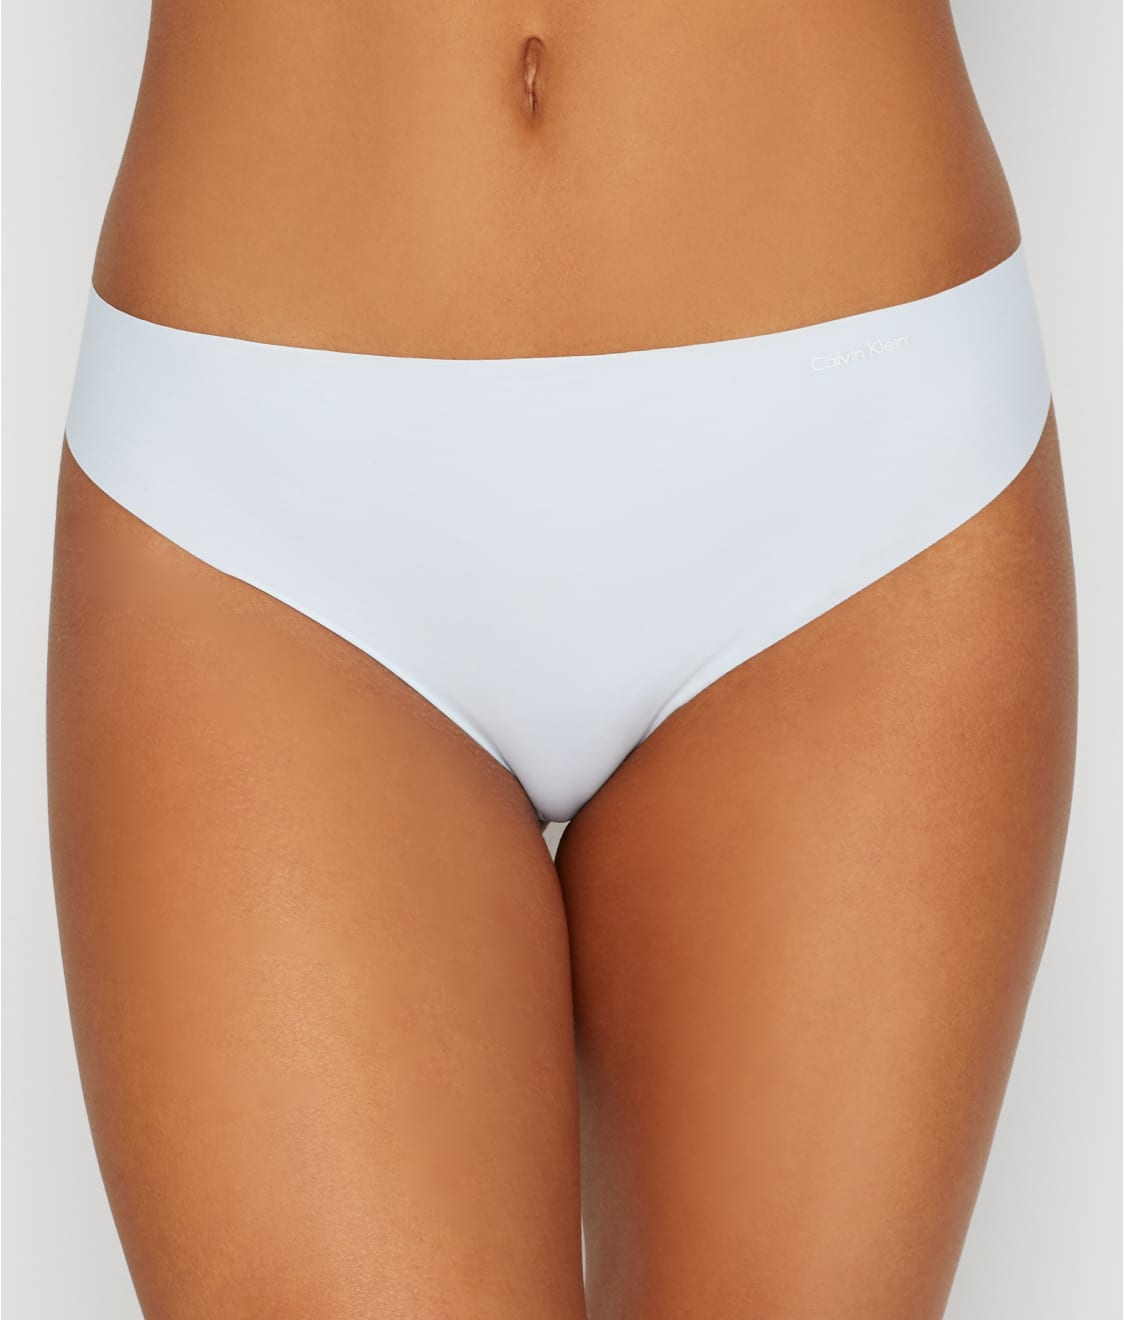 380d96b20308 Calvin Klein Invisibles Thong   Bare Necessities (D3428)